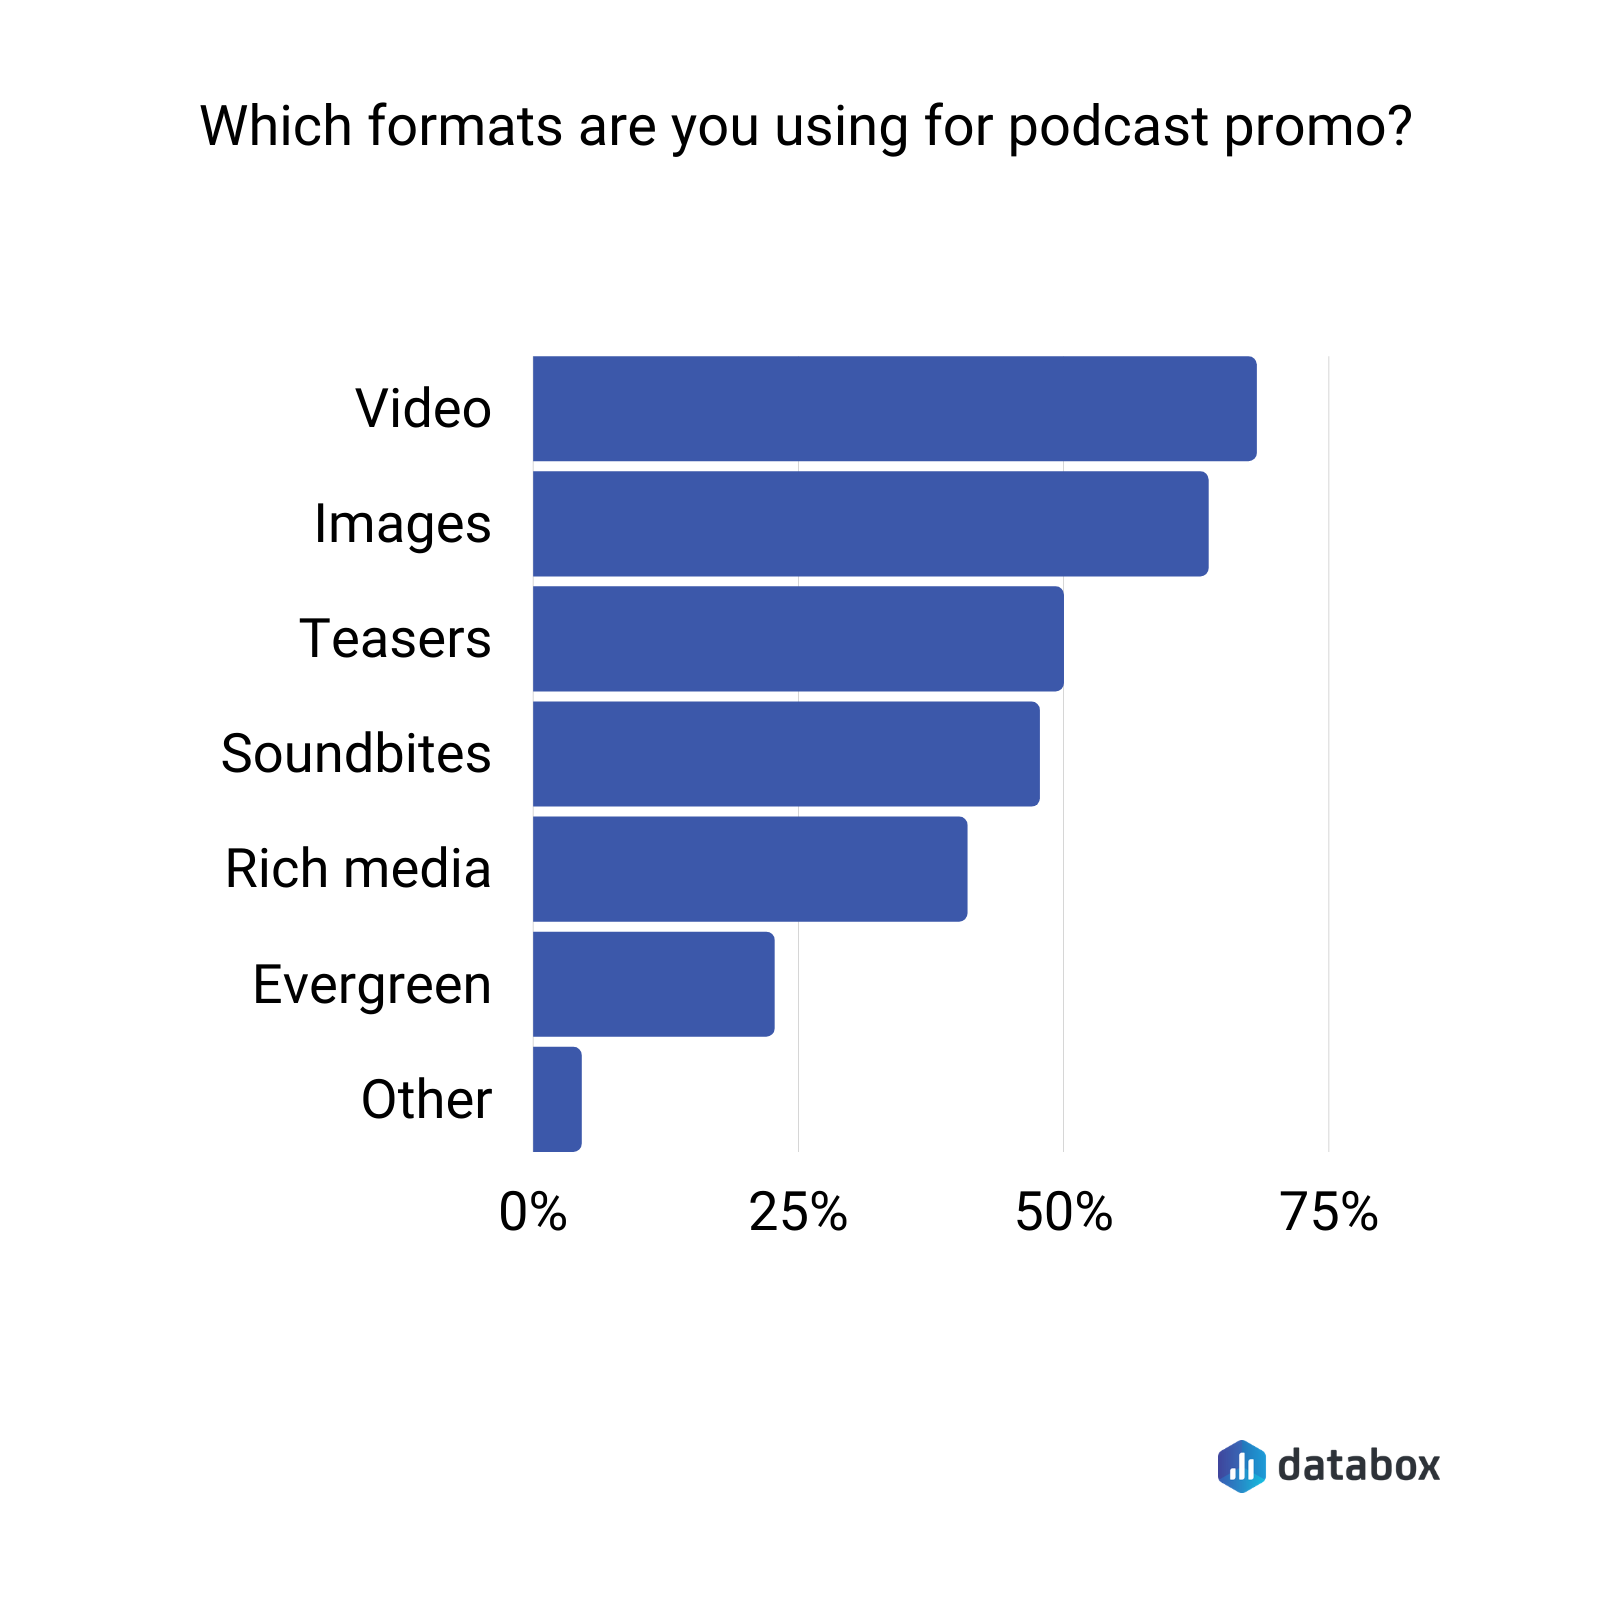 which formats are you using for podcast promo?